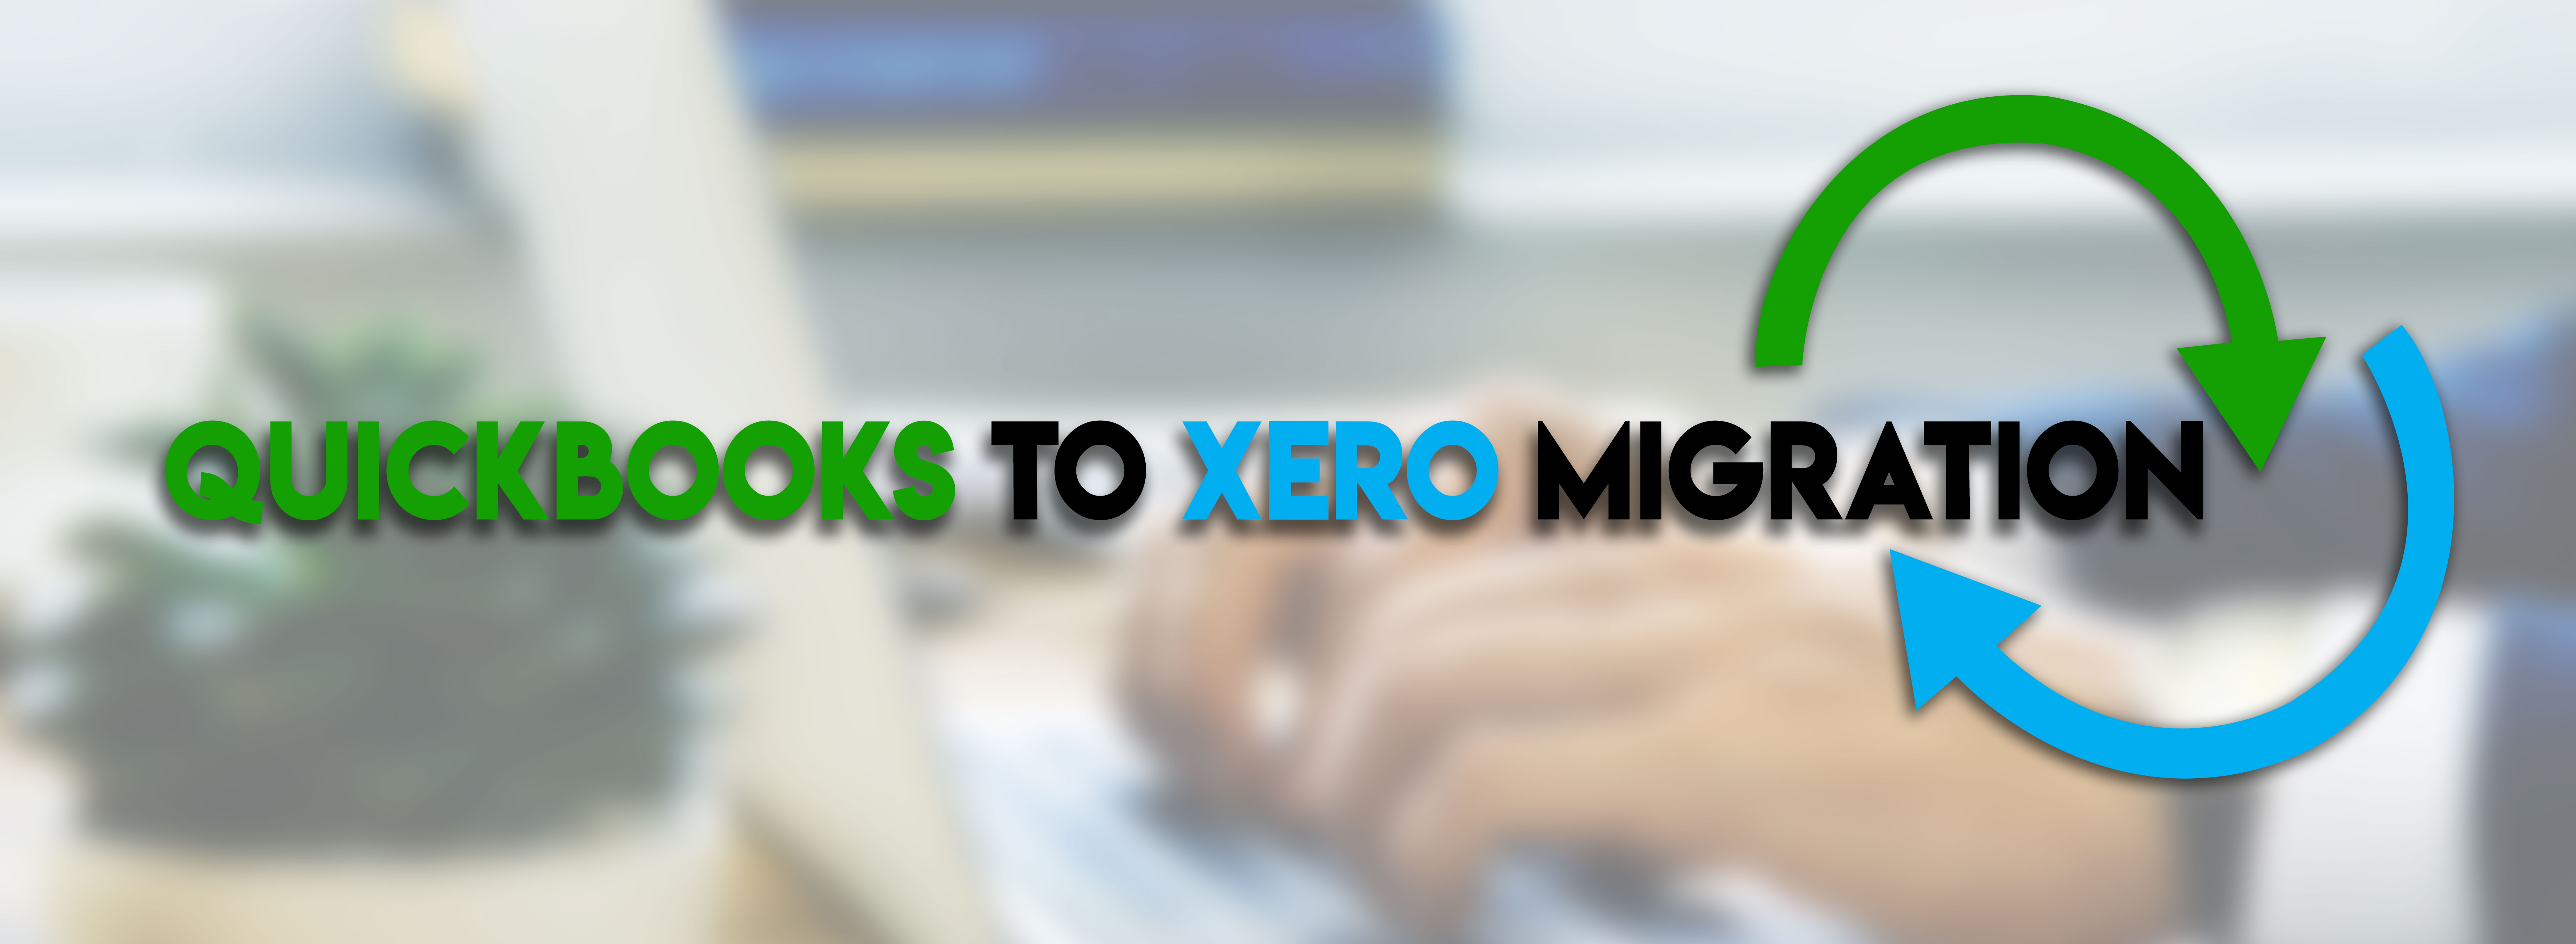 QuickBooks to XERO Migration